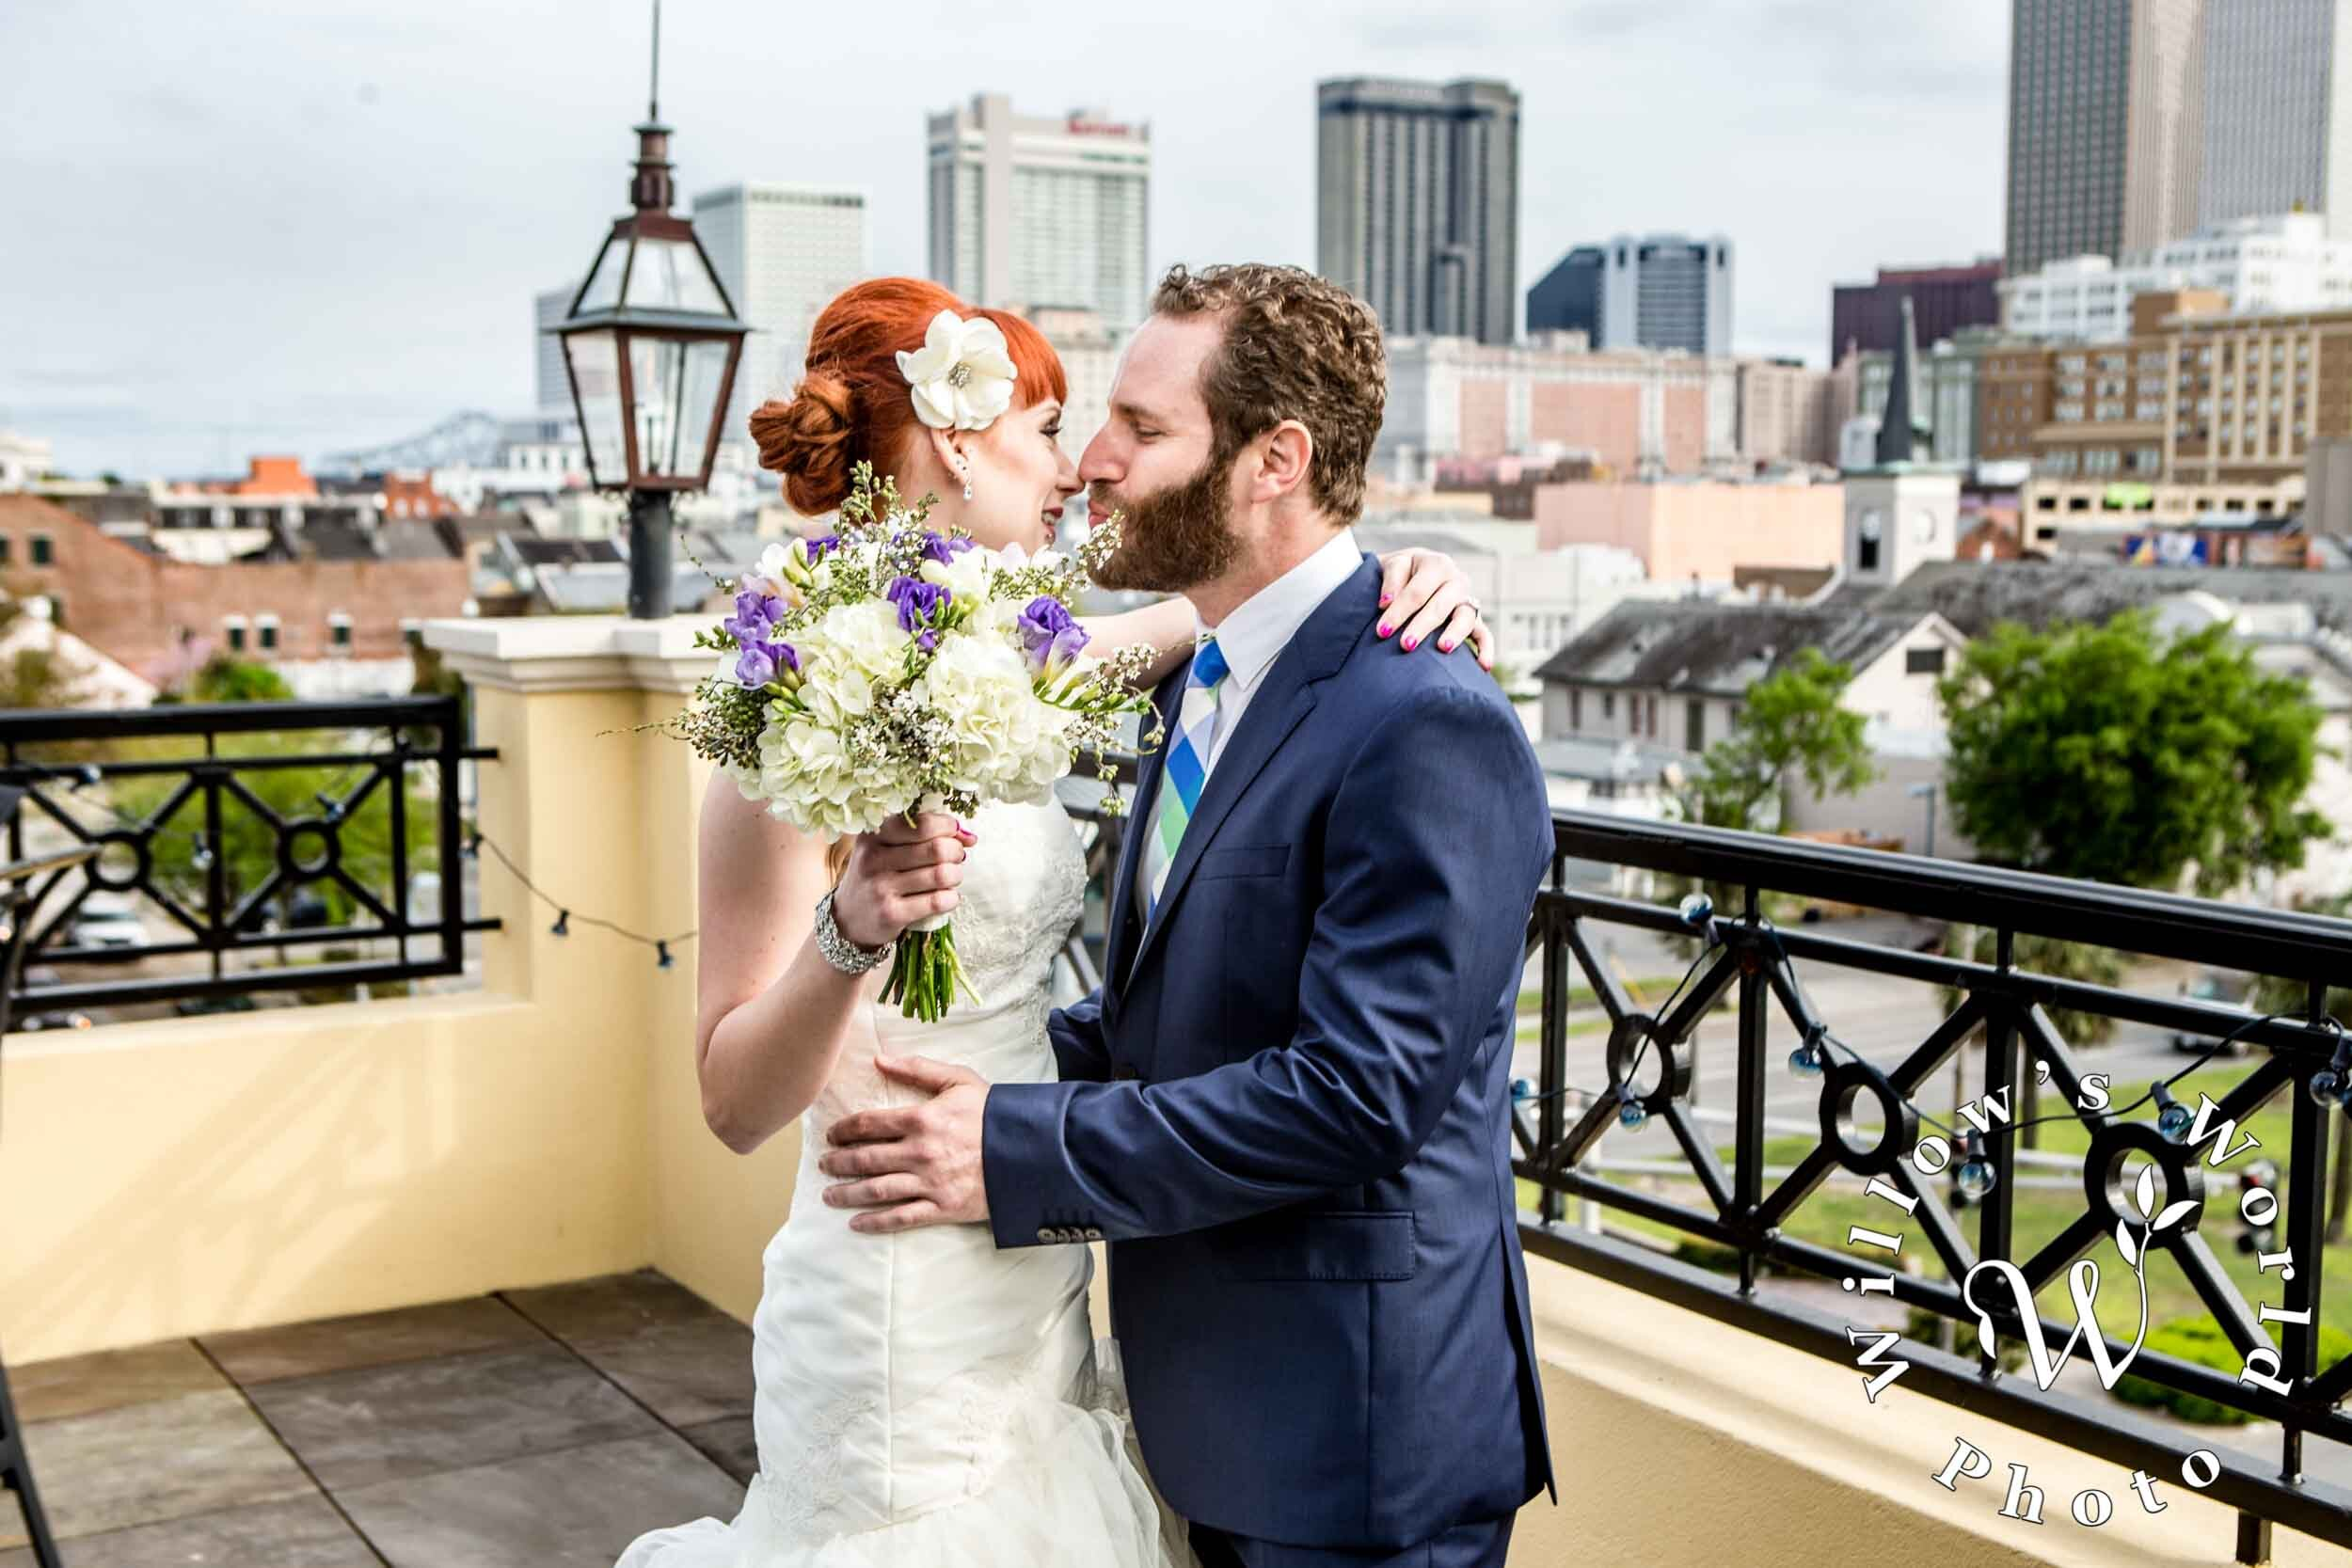 New-Orleans-Basin-St-Station-Wedding-First-Look-Photo-Willows-World-Photo.jpg